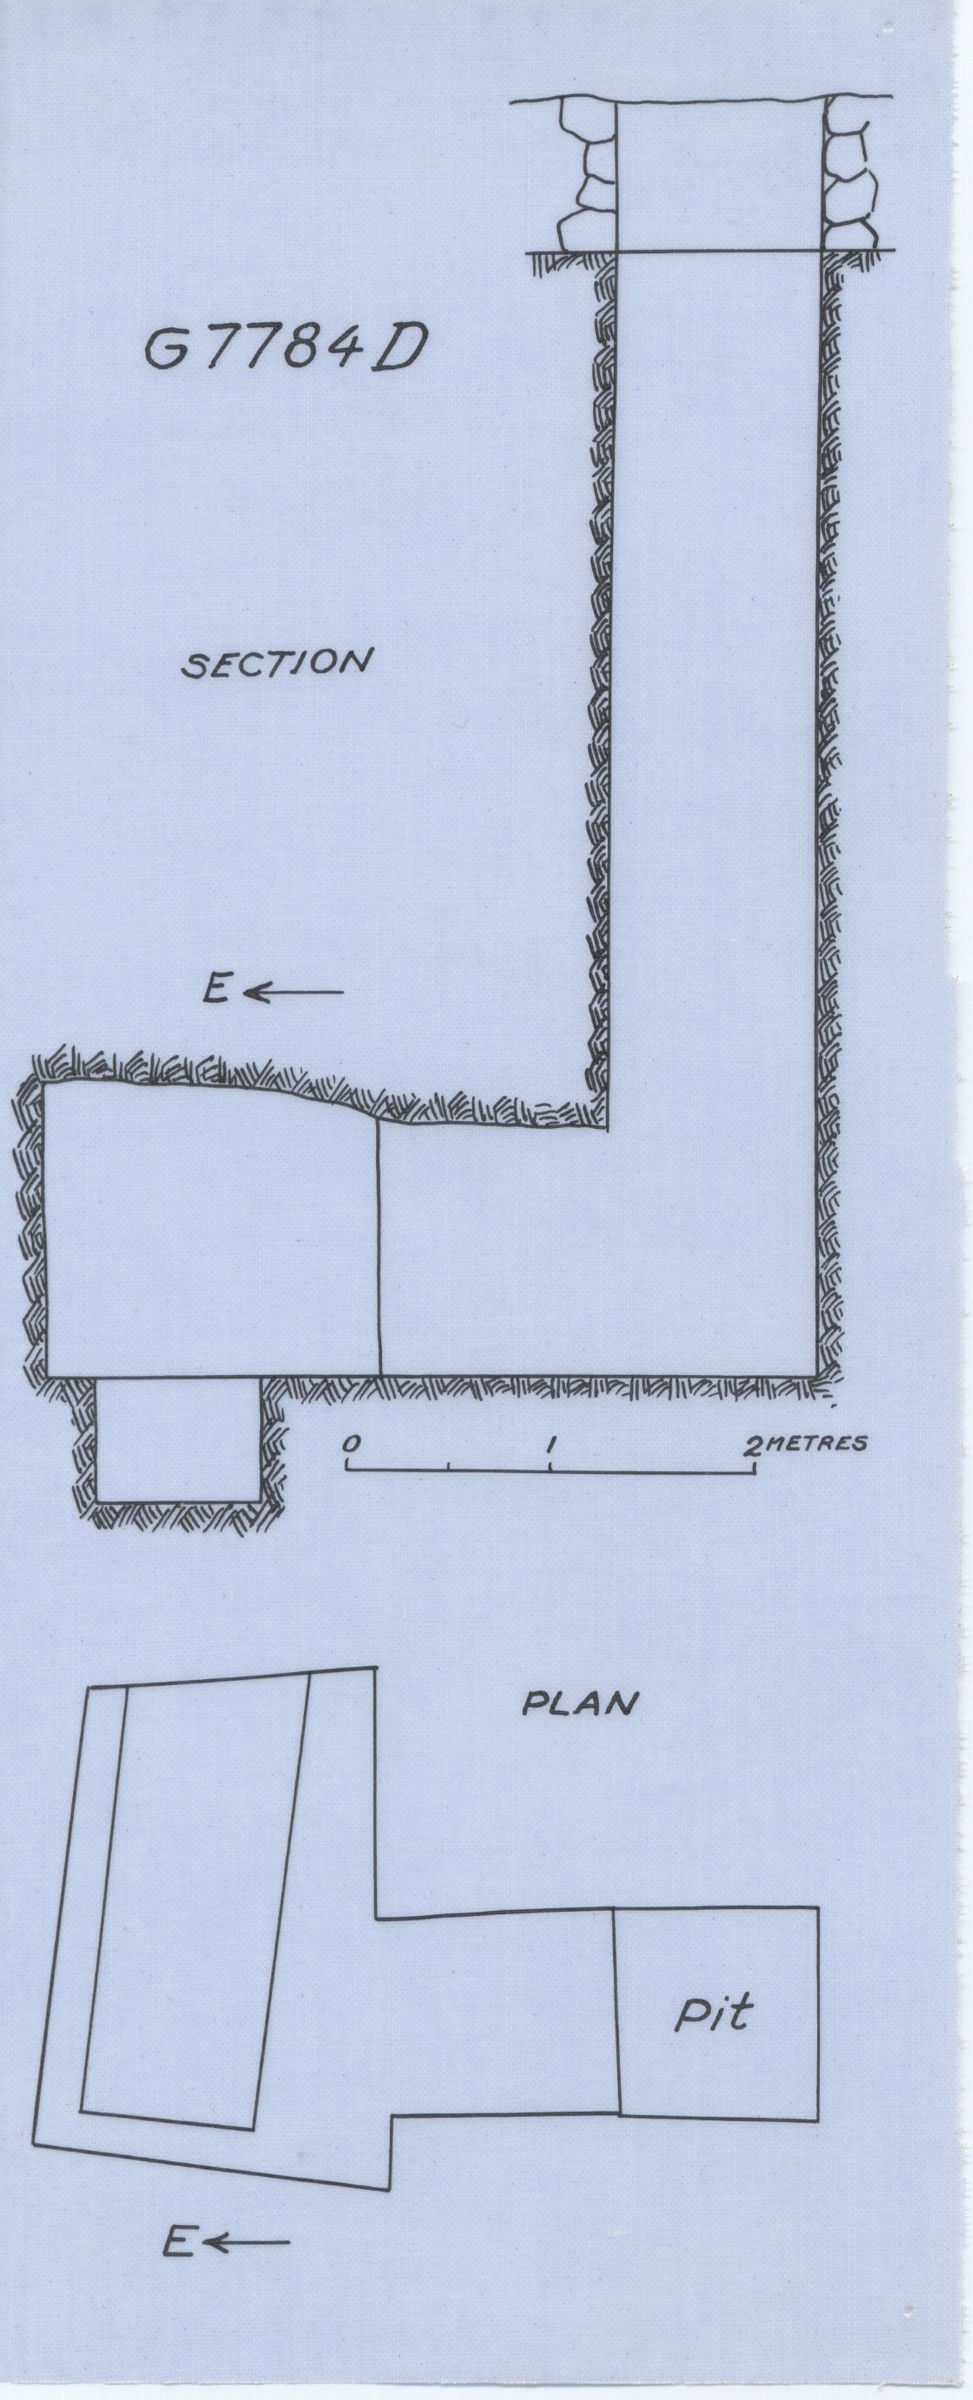 Maps and plans: G 7784, Shaft D